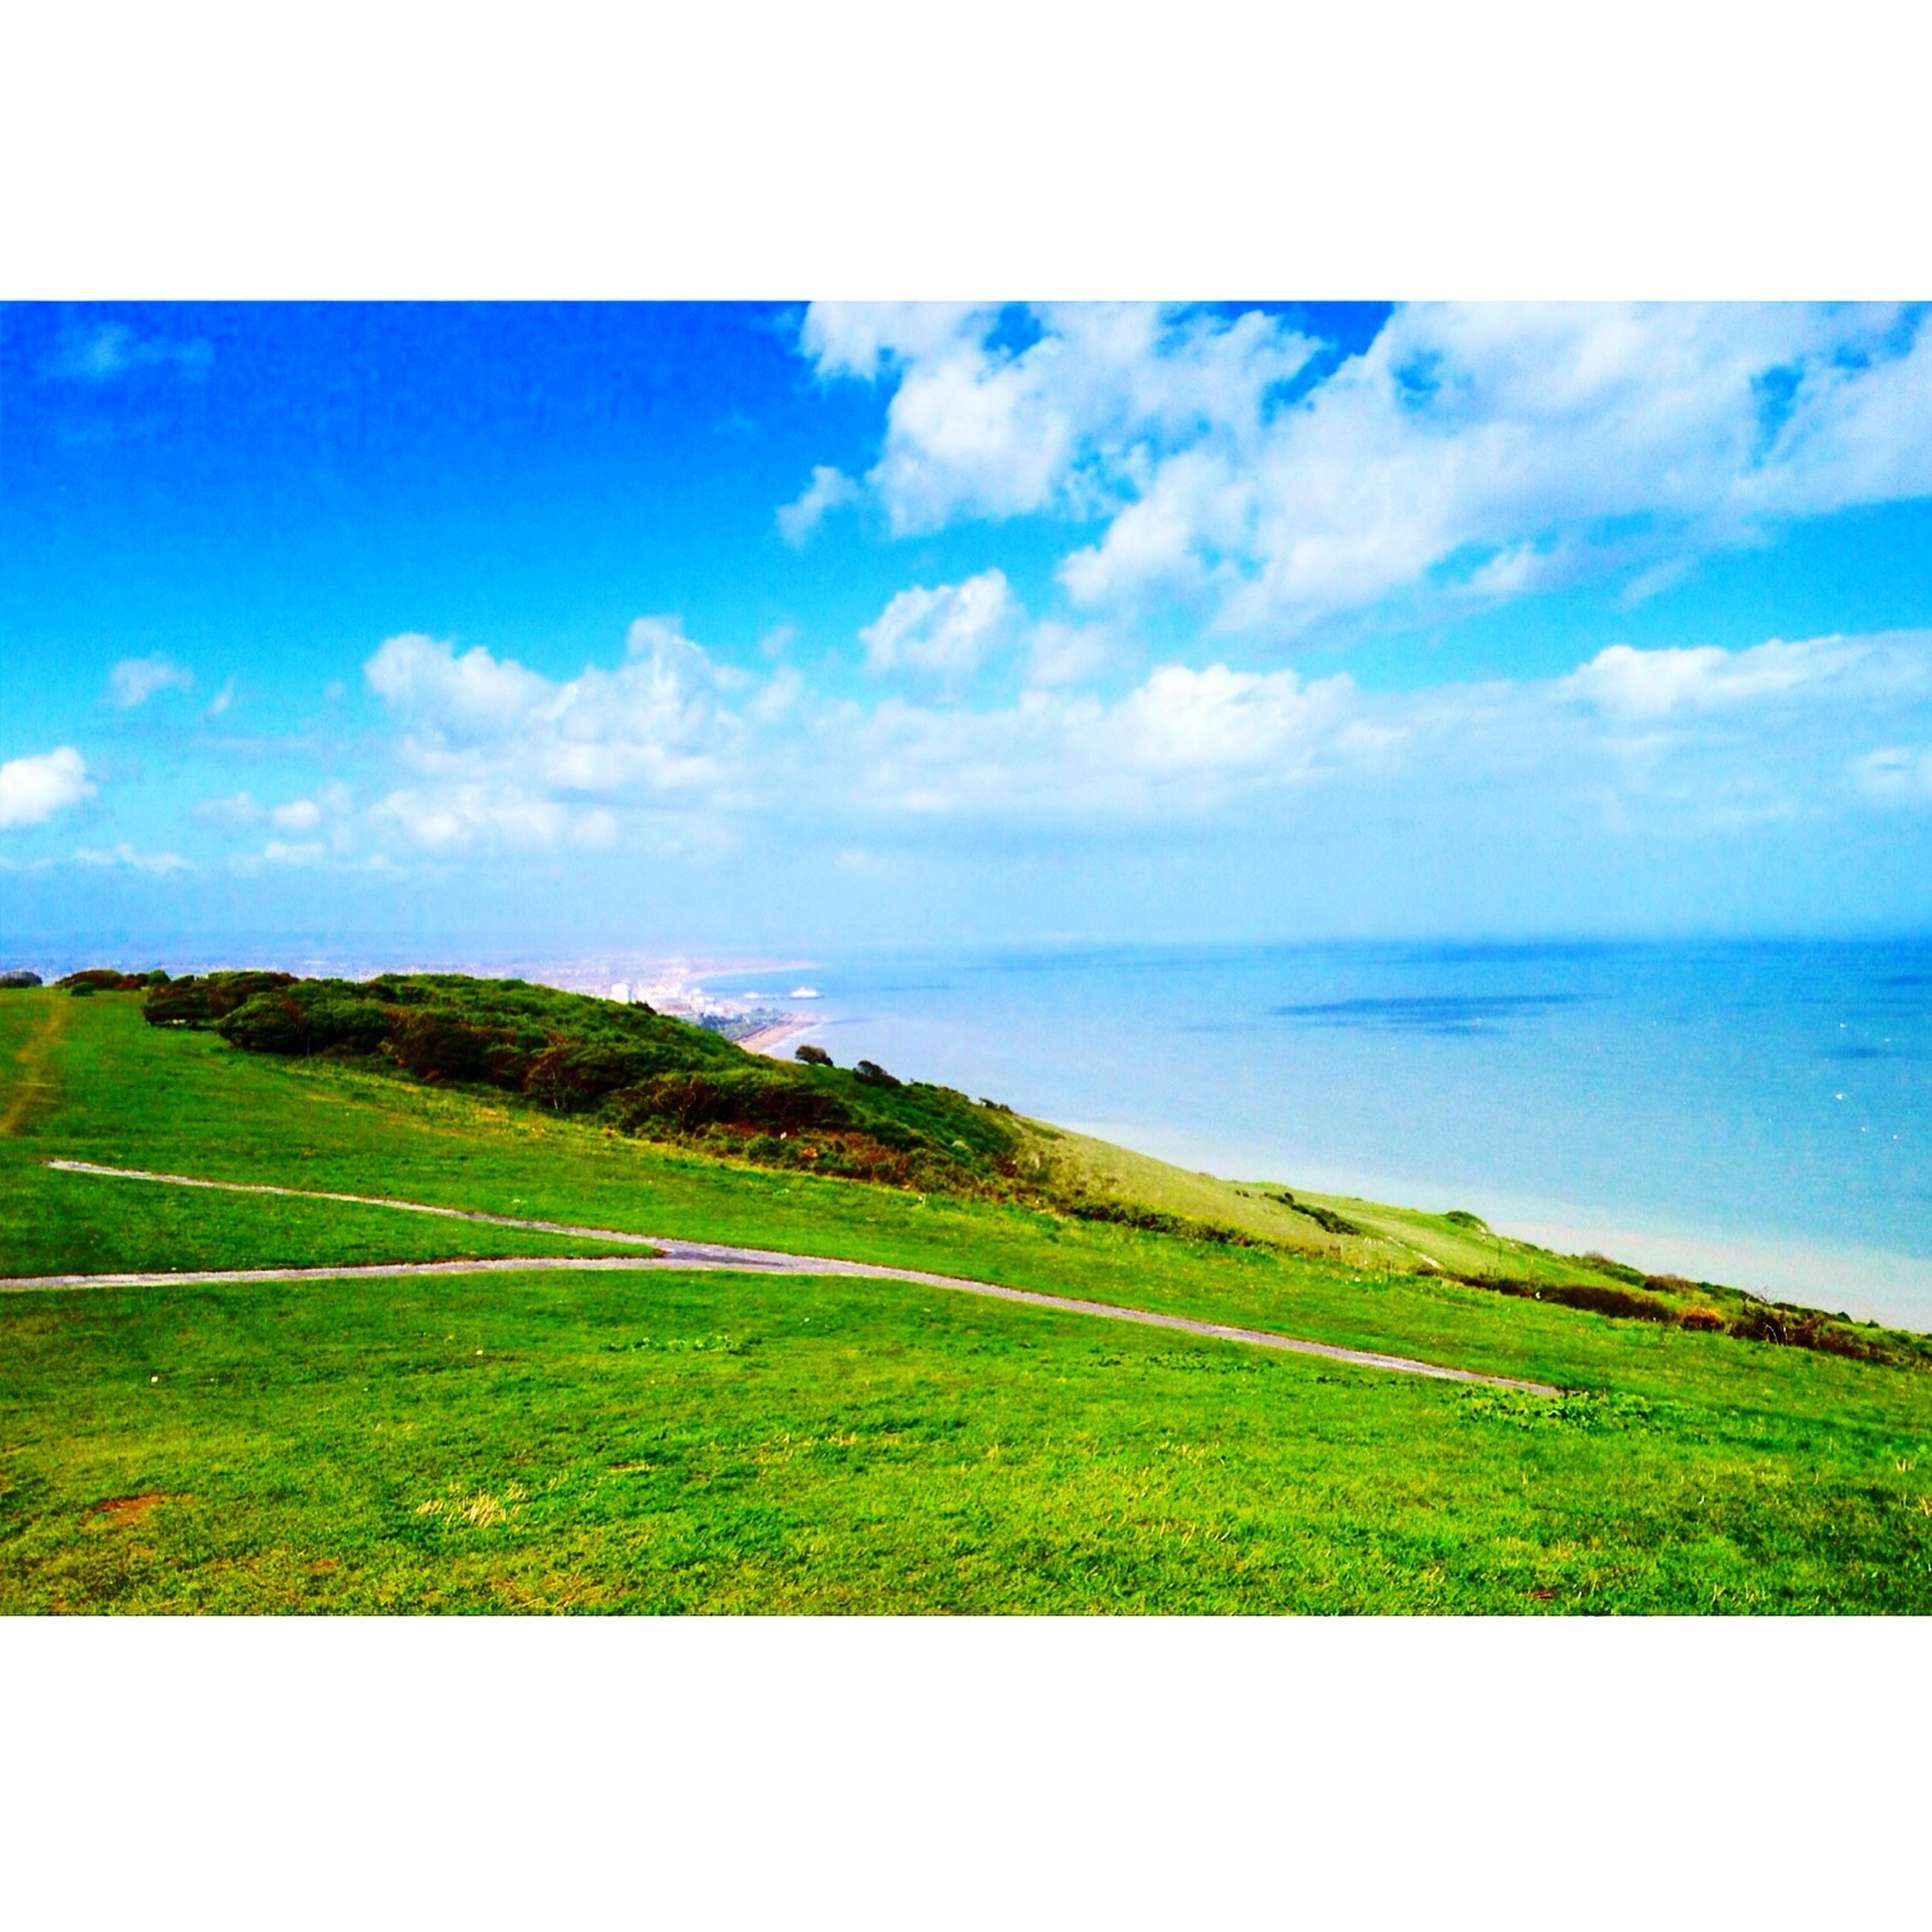 tranquil scene, grass, tranquility, sky, scenics, transfer print, beauty in nature, blue, landscape, horizon over water, nature, green color, field, sea, auto post production filter, cloud, cloud - sky, water, idyllic, horizon over land